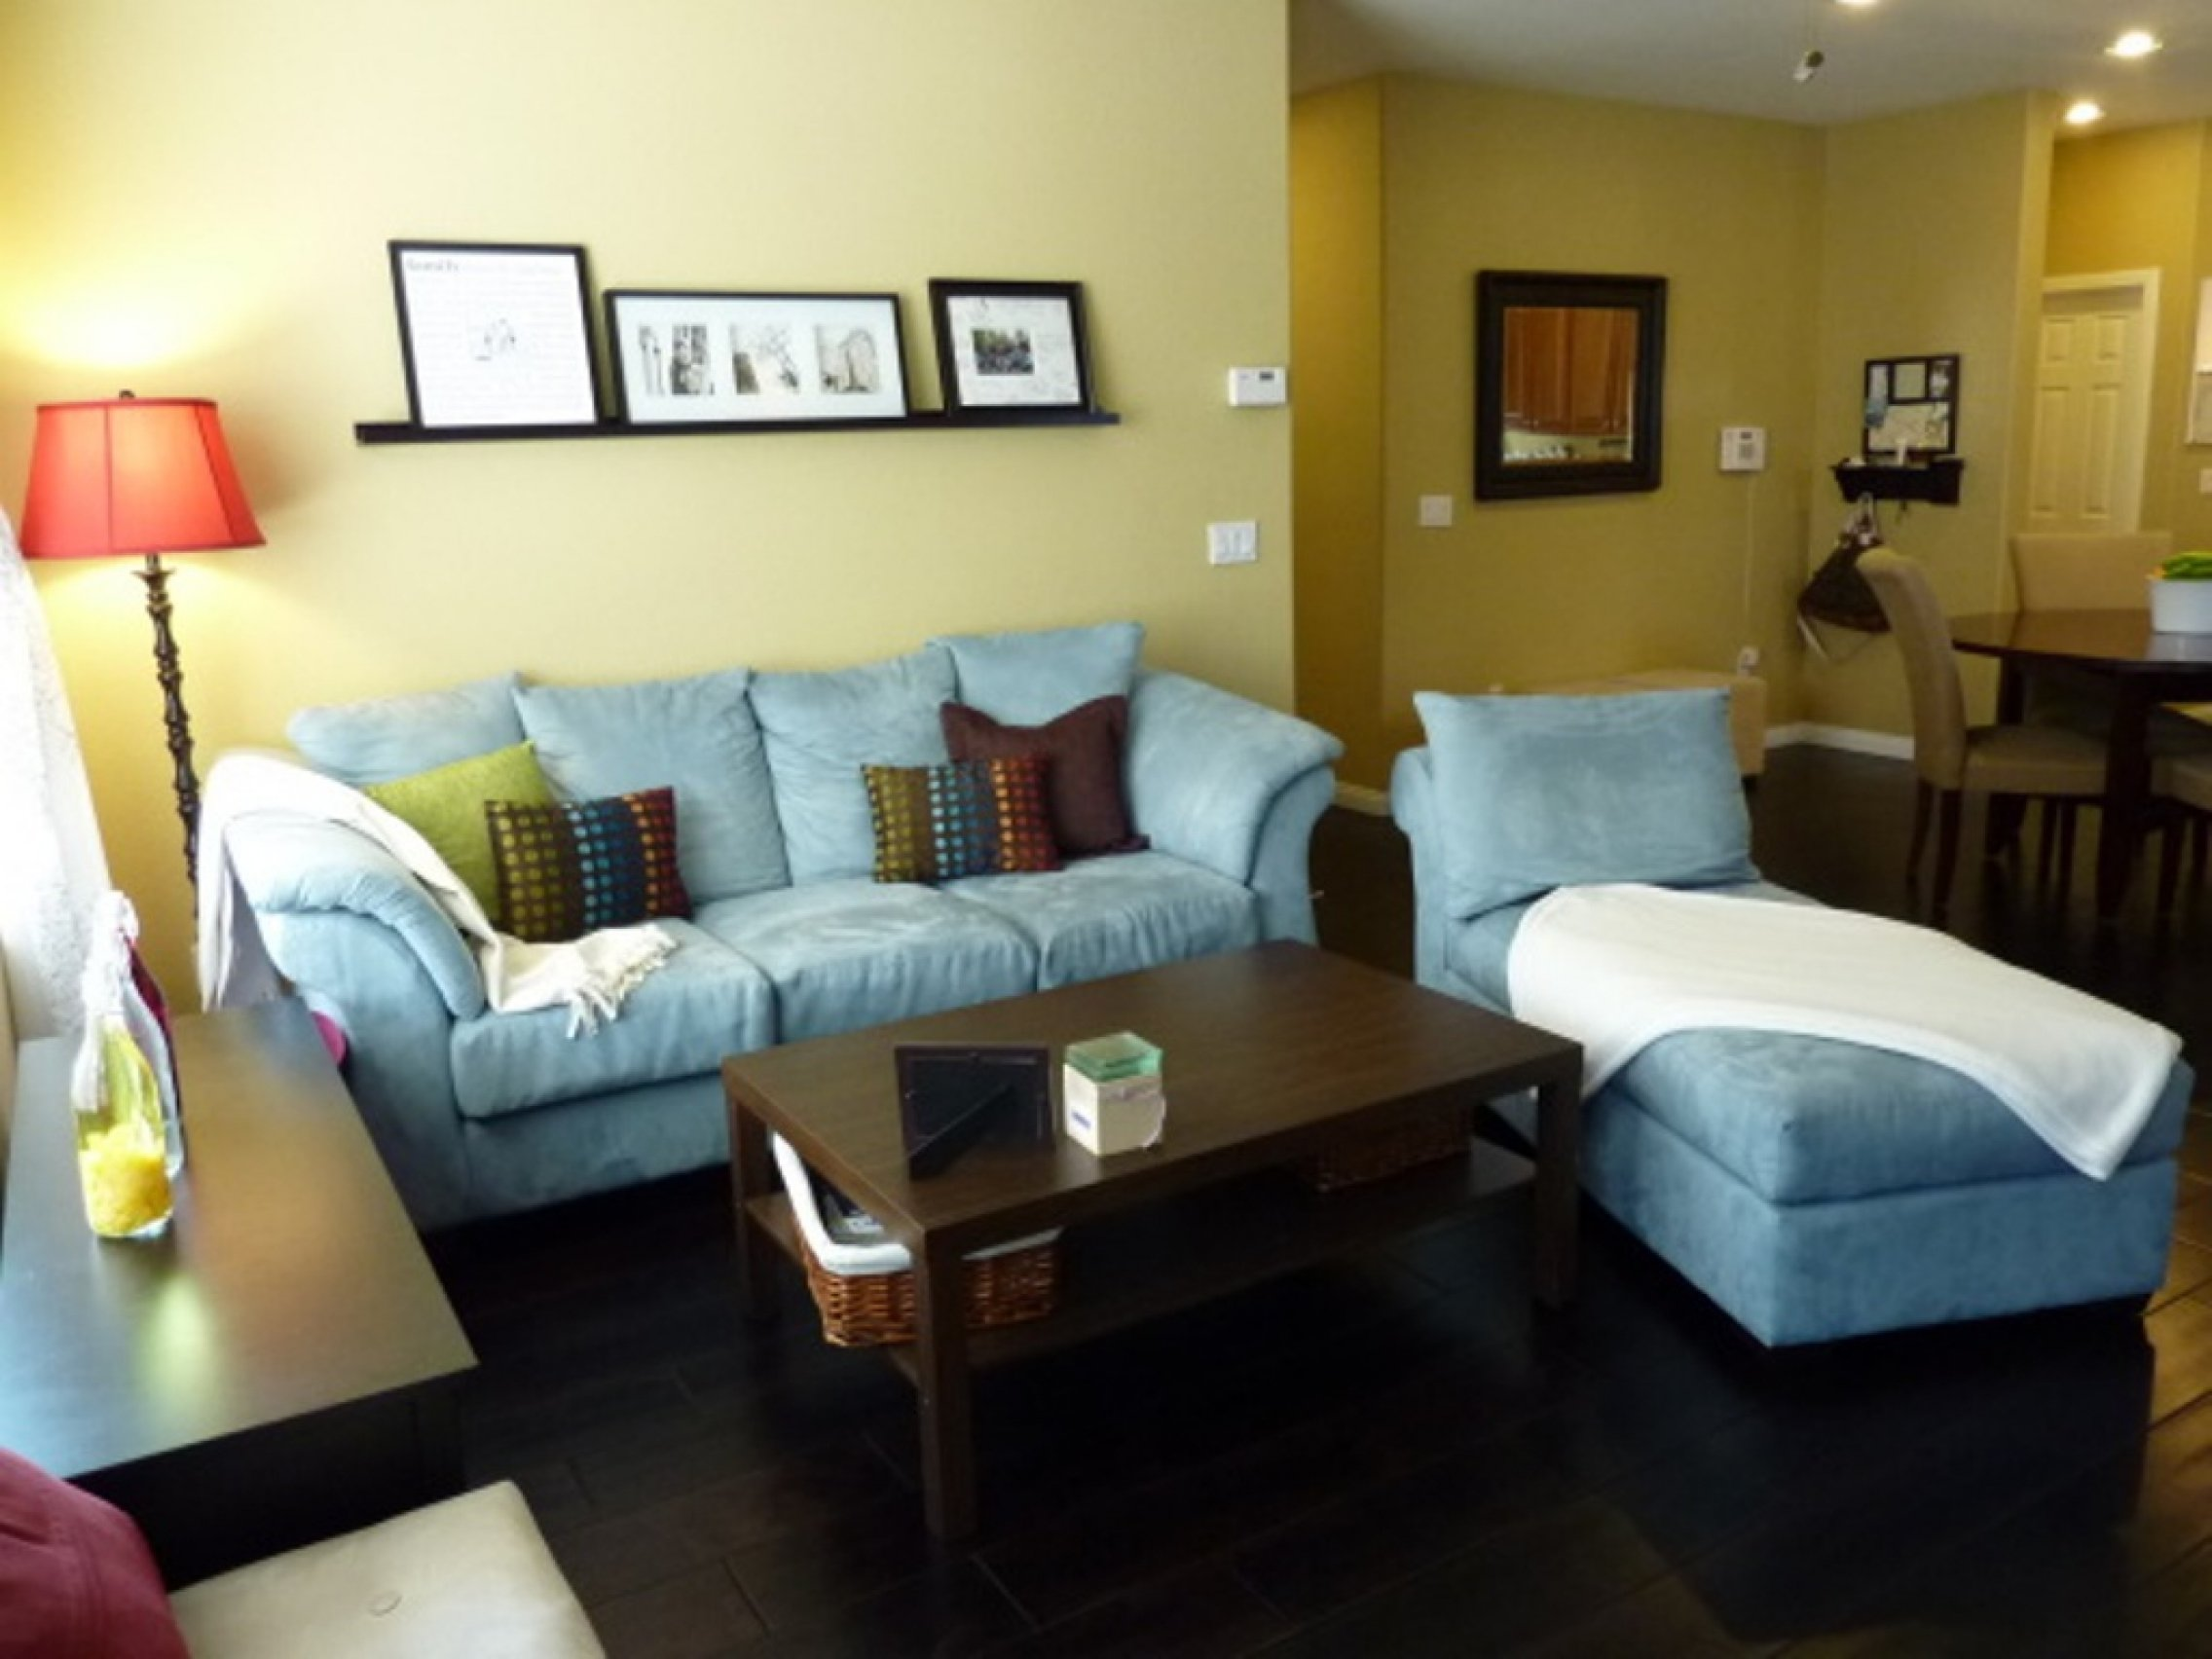 10 Ideal Small Living Room Decorating Ideas On A Budget living room design ideas on a budget decorating for small rooms 2020